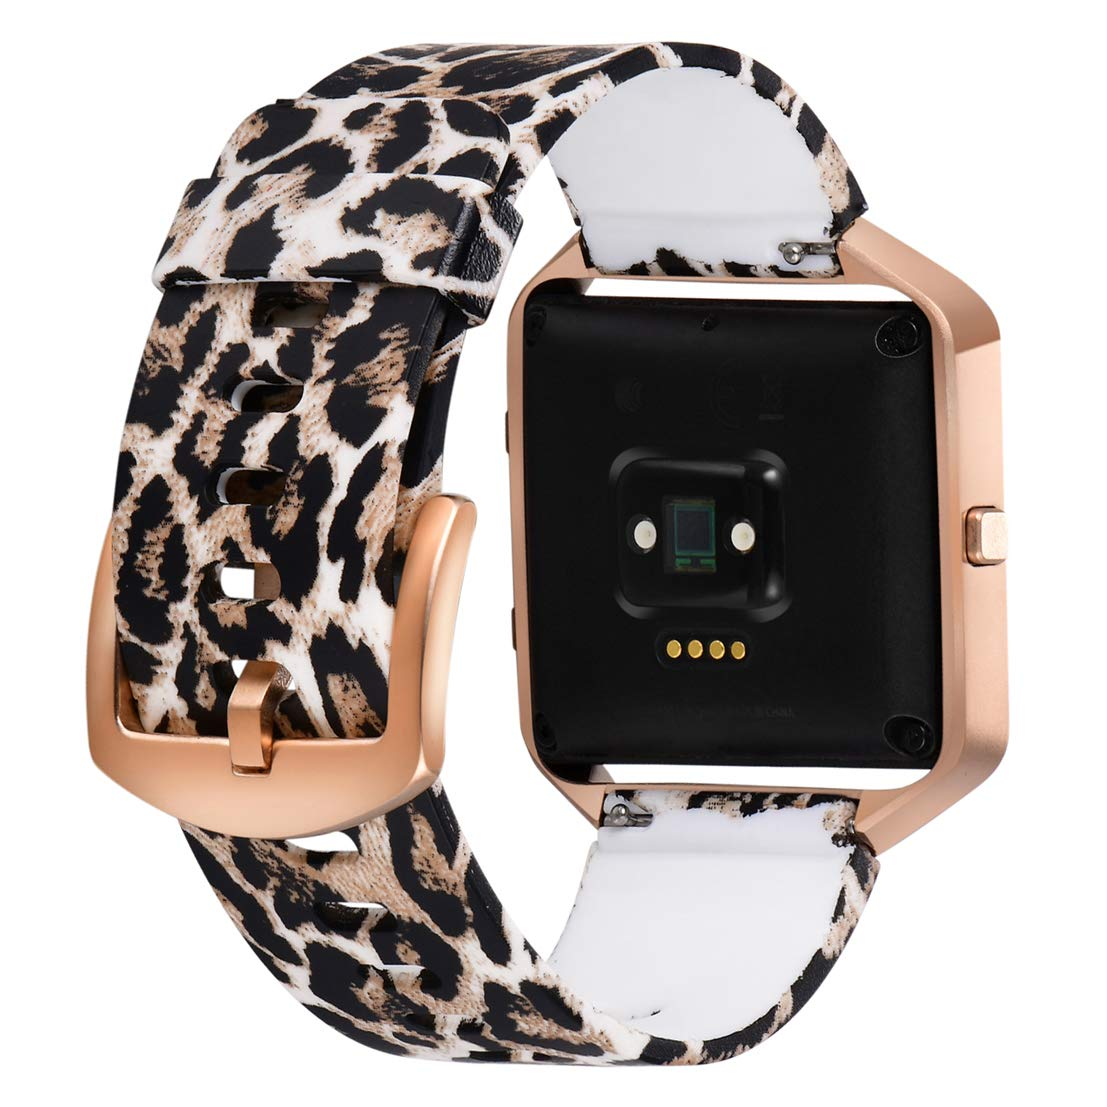 Aiseve Fitbit Blaze Floral Bands Women, Replacement Wristbands Strap with Rose Gold Frame Buckle for Fitbit Blaze Smartwatch Small Large (Leopard, Small) by Aiseve